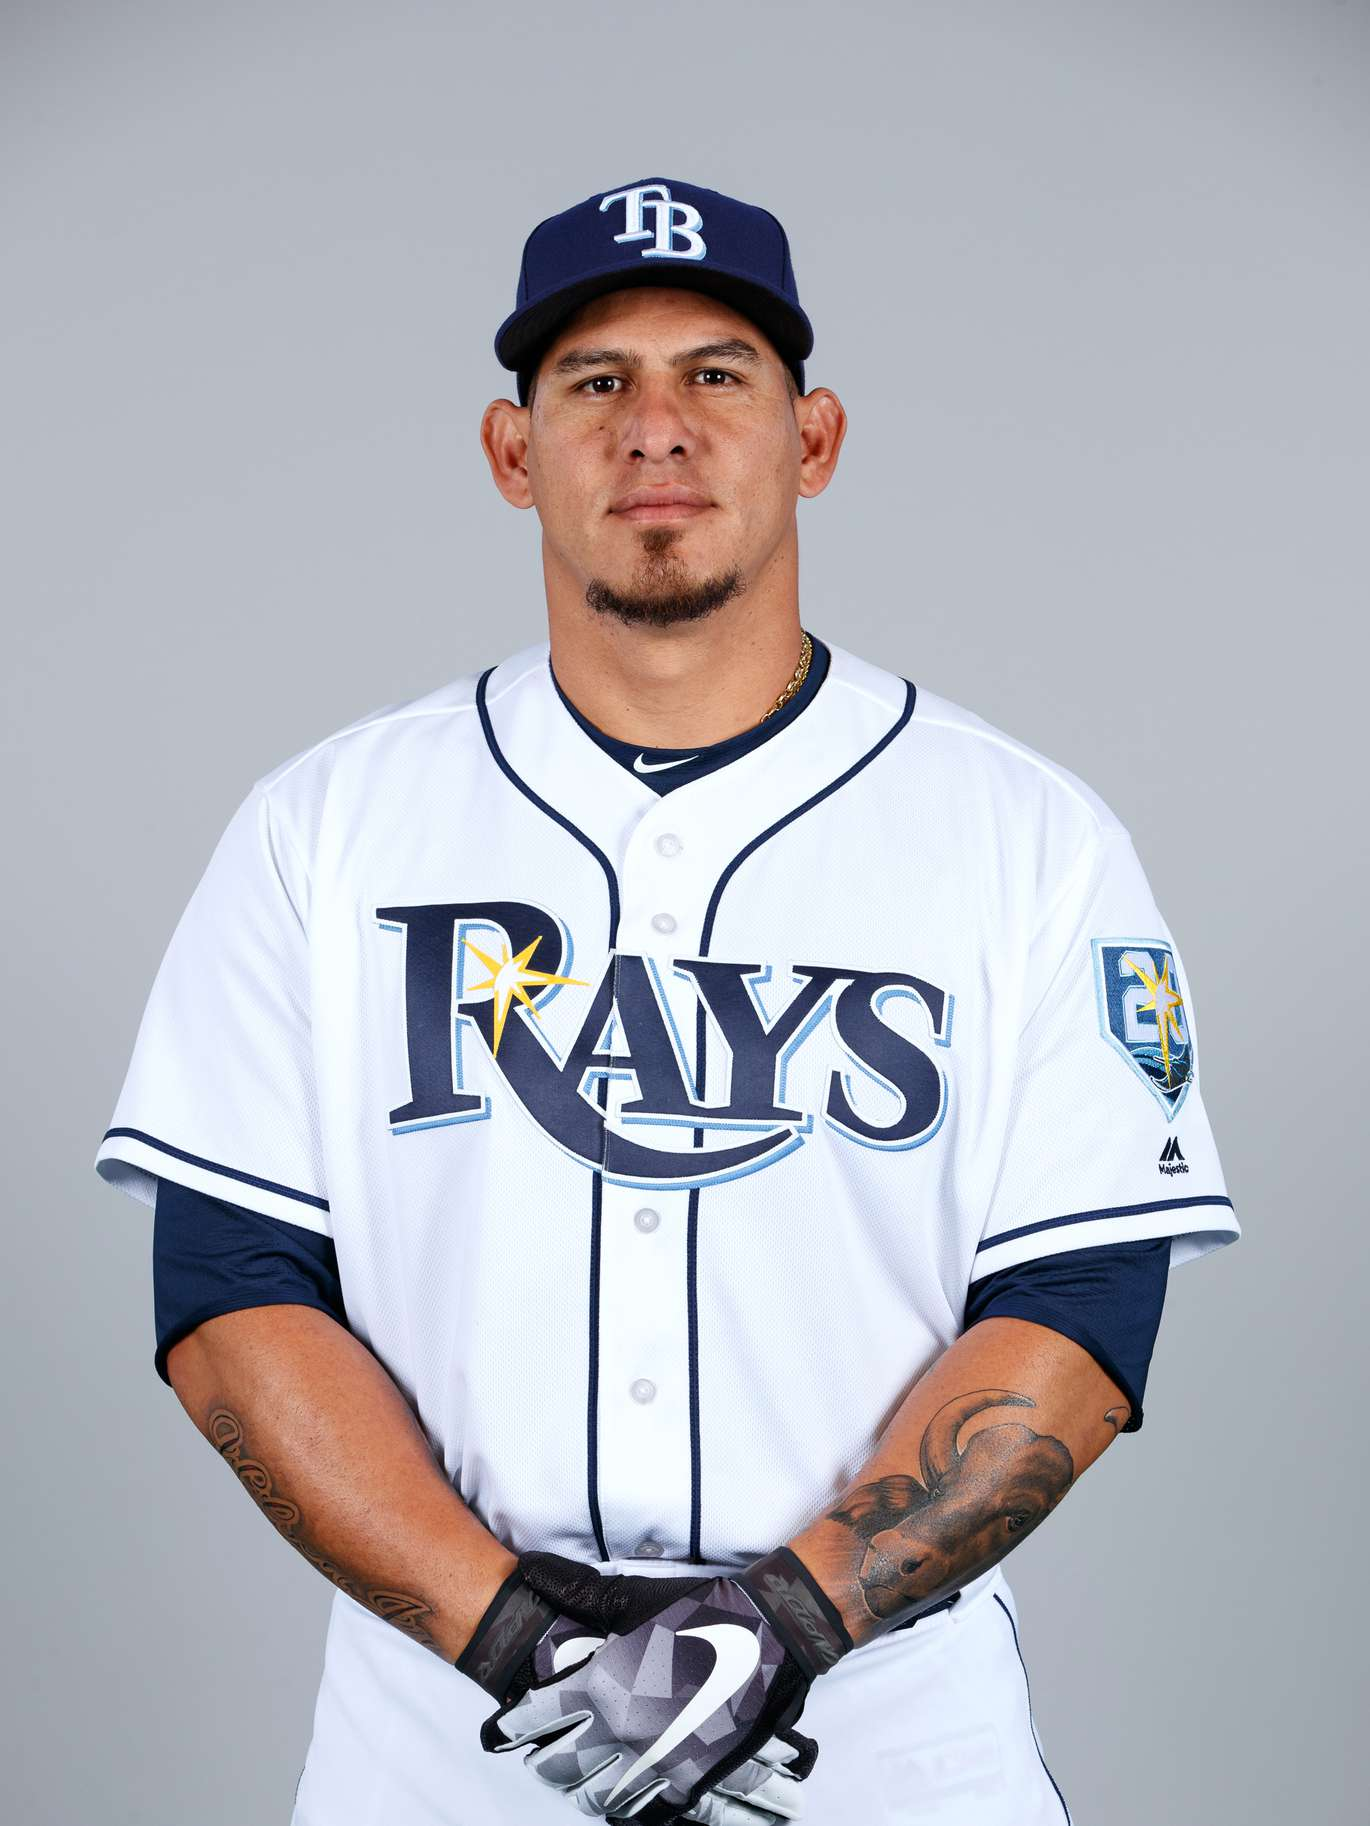 7. Wilson Ramos, c, No. 40: Playing to re-establish value for next big deal after spending '17 rehabbing from knee injury, Rays can benefit from going along for ride.